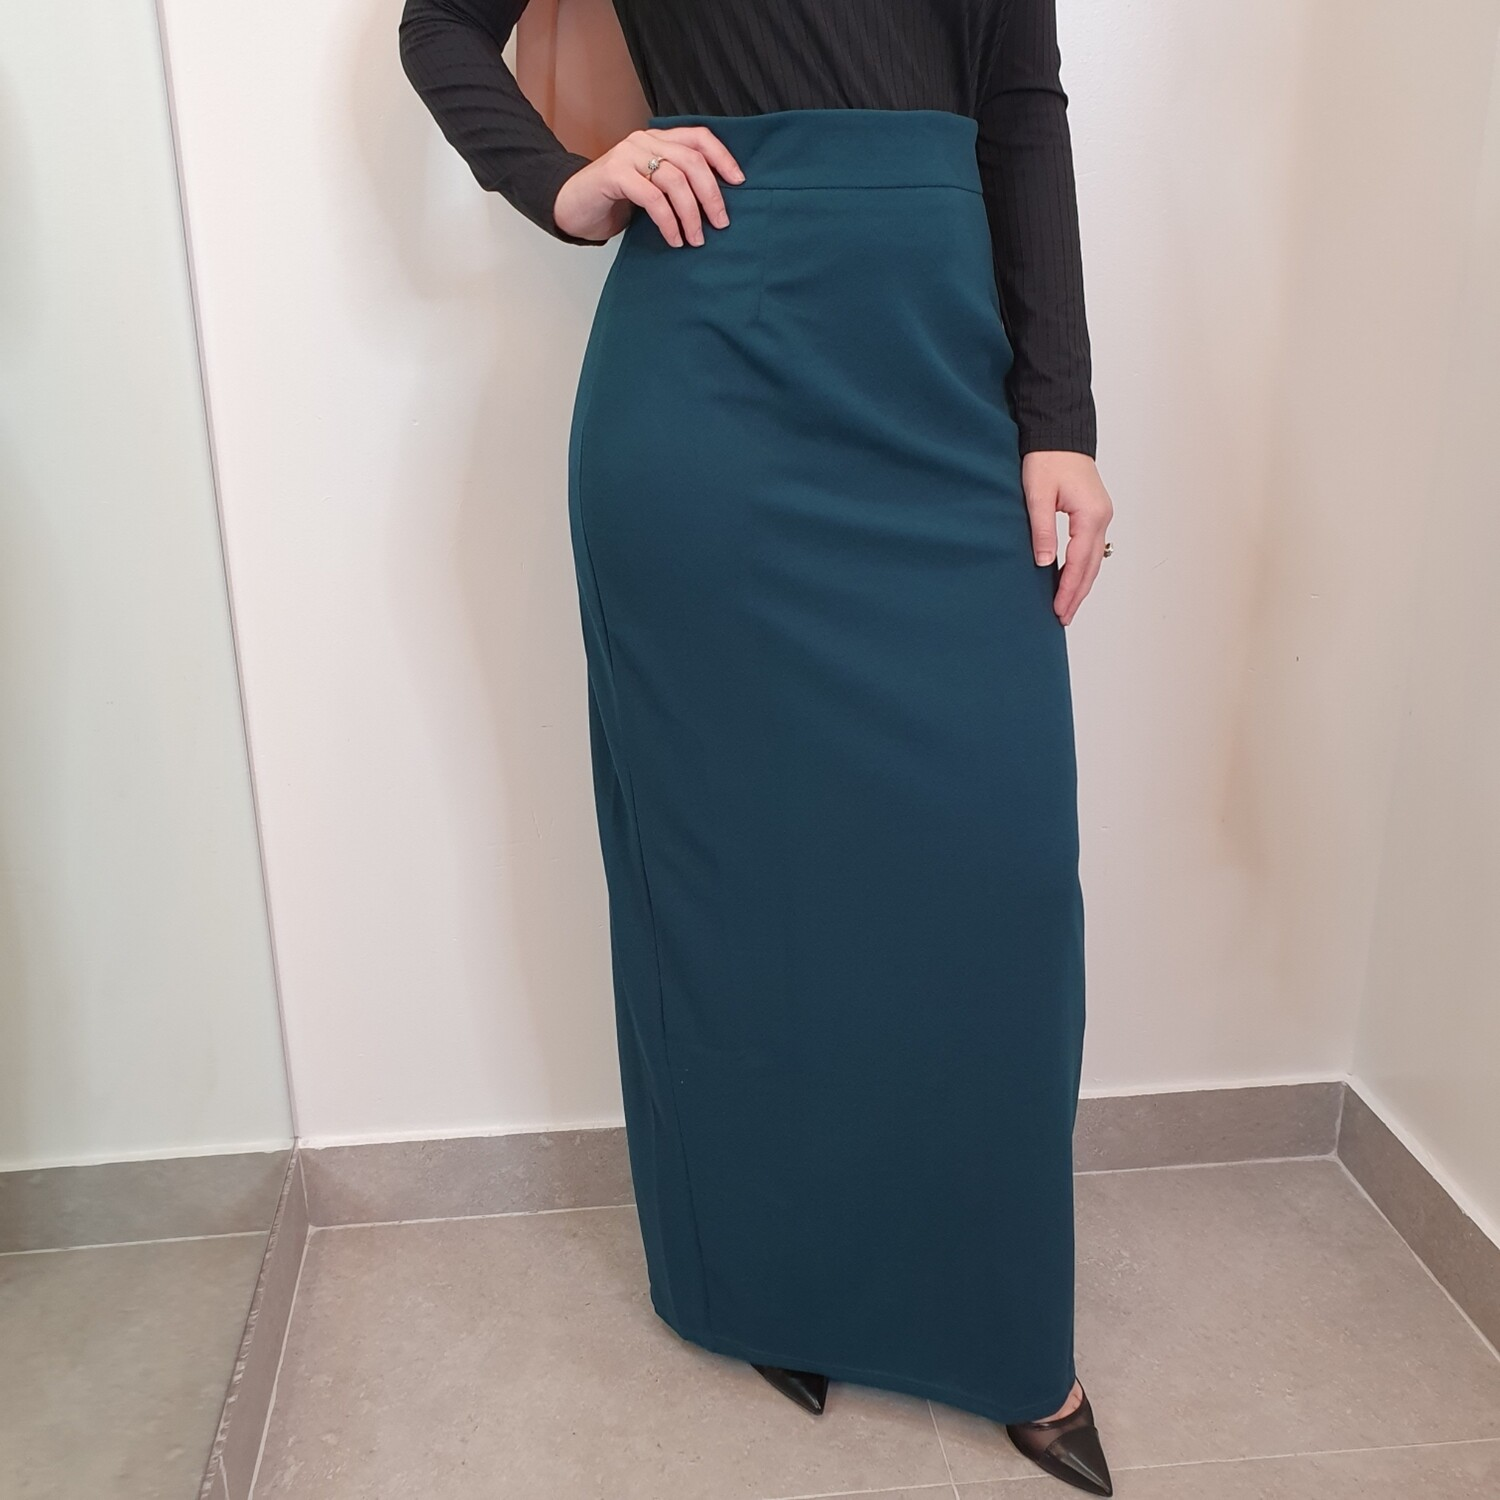 Basic pencil skirt teal